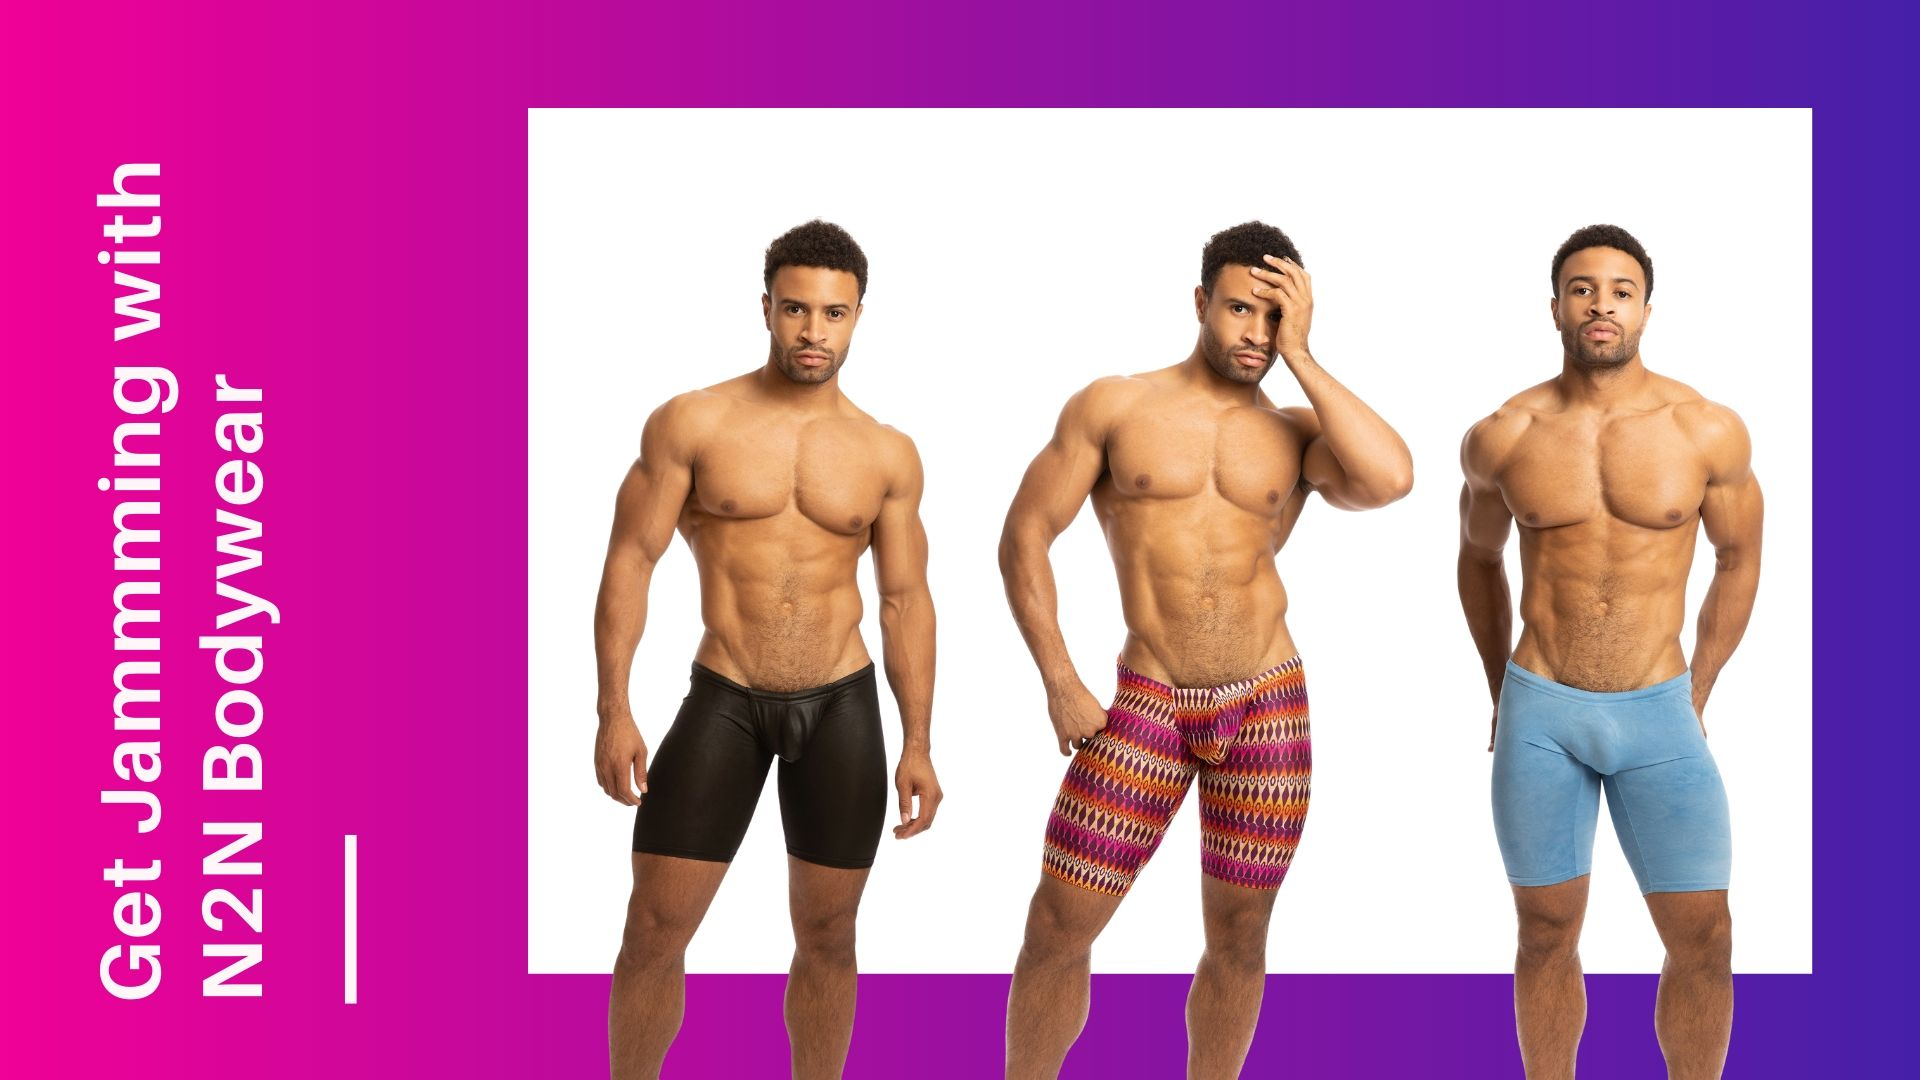 Get Jamming with N2N Bodywear